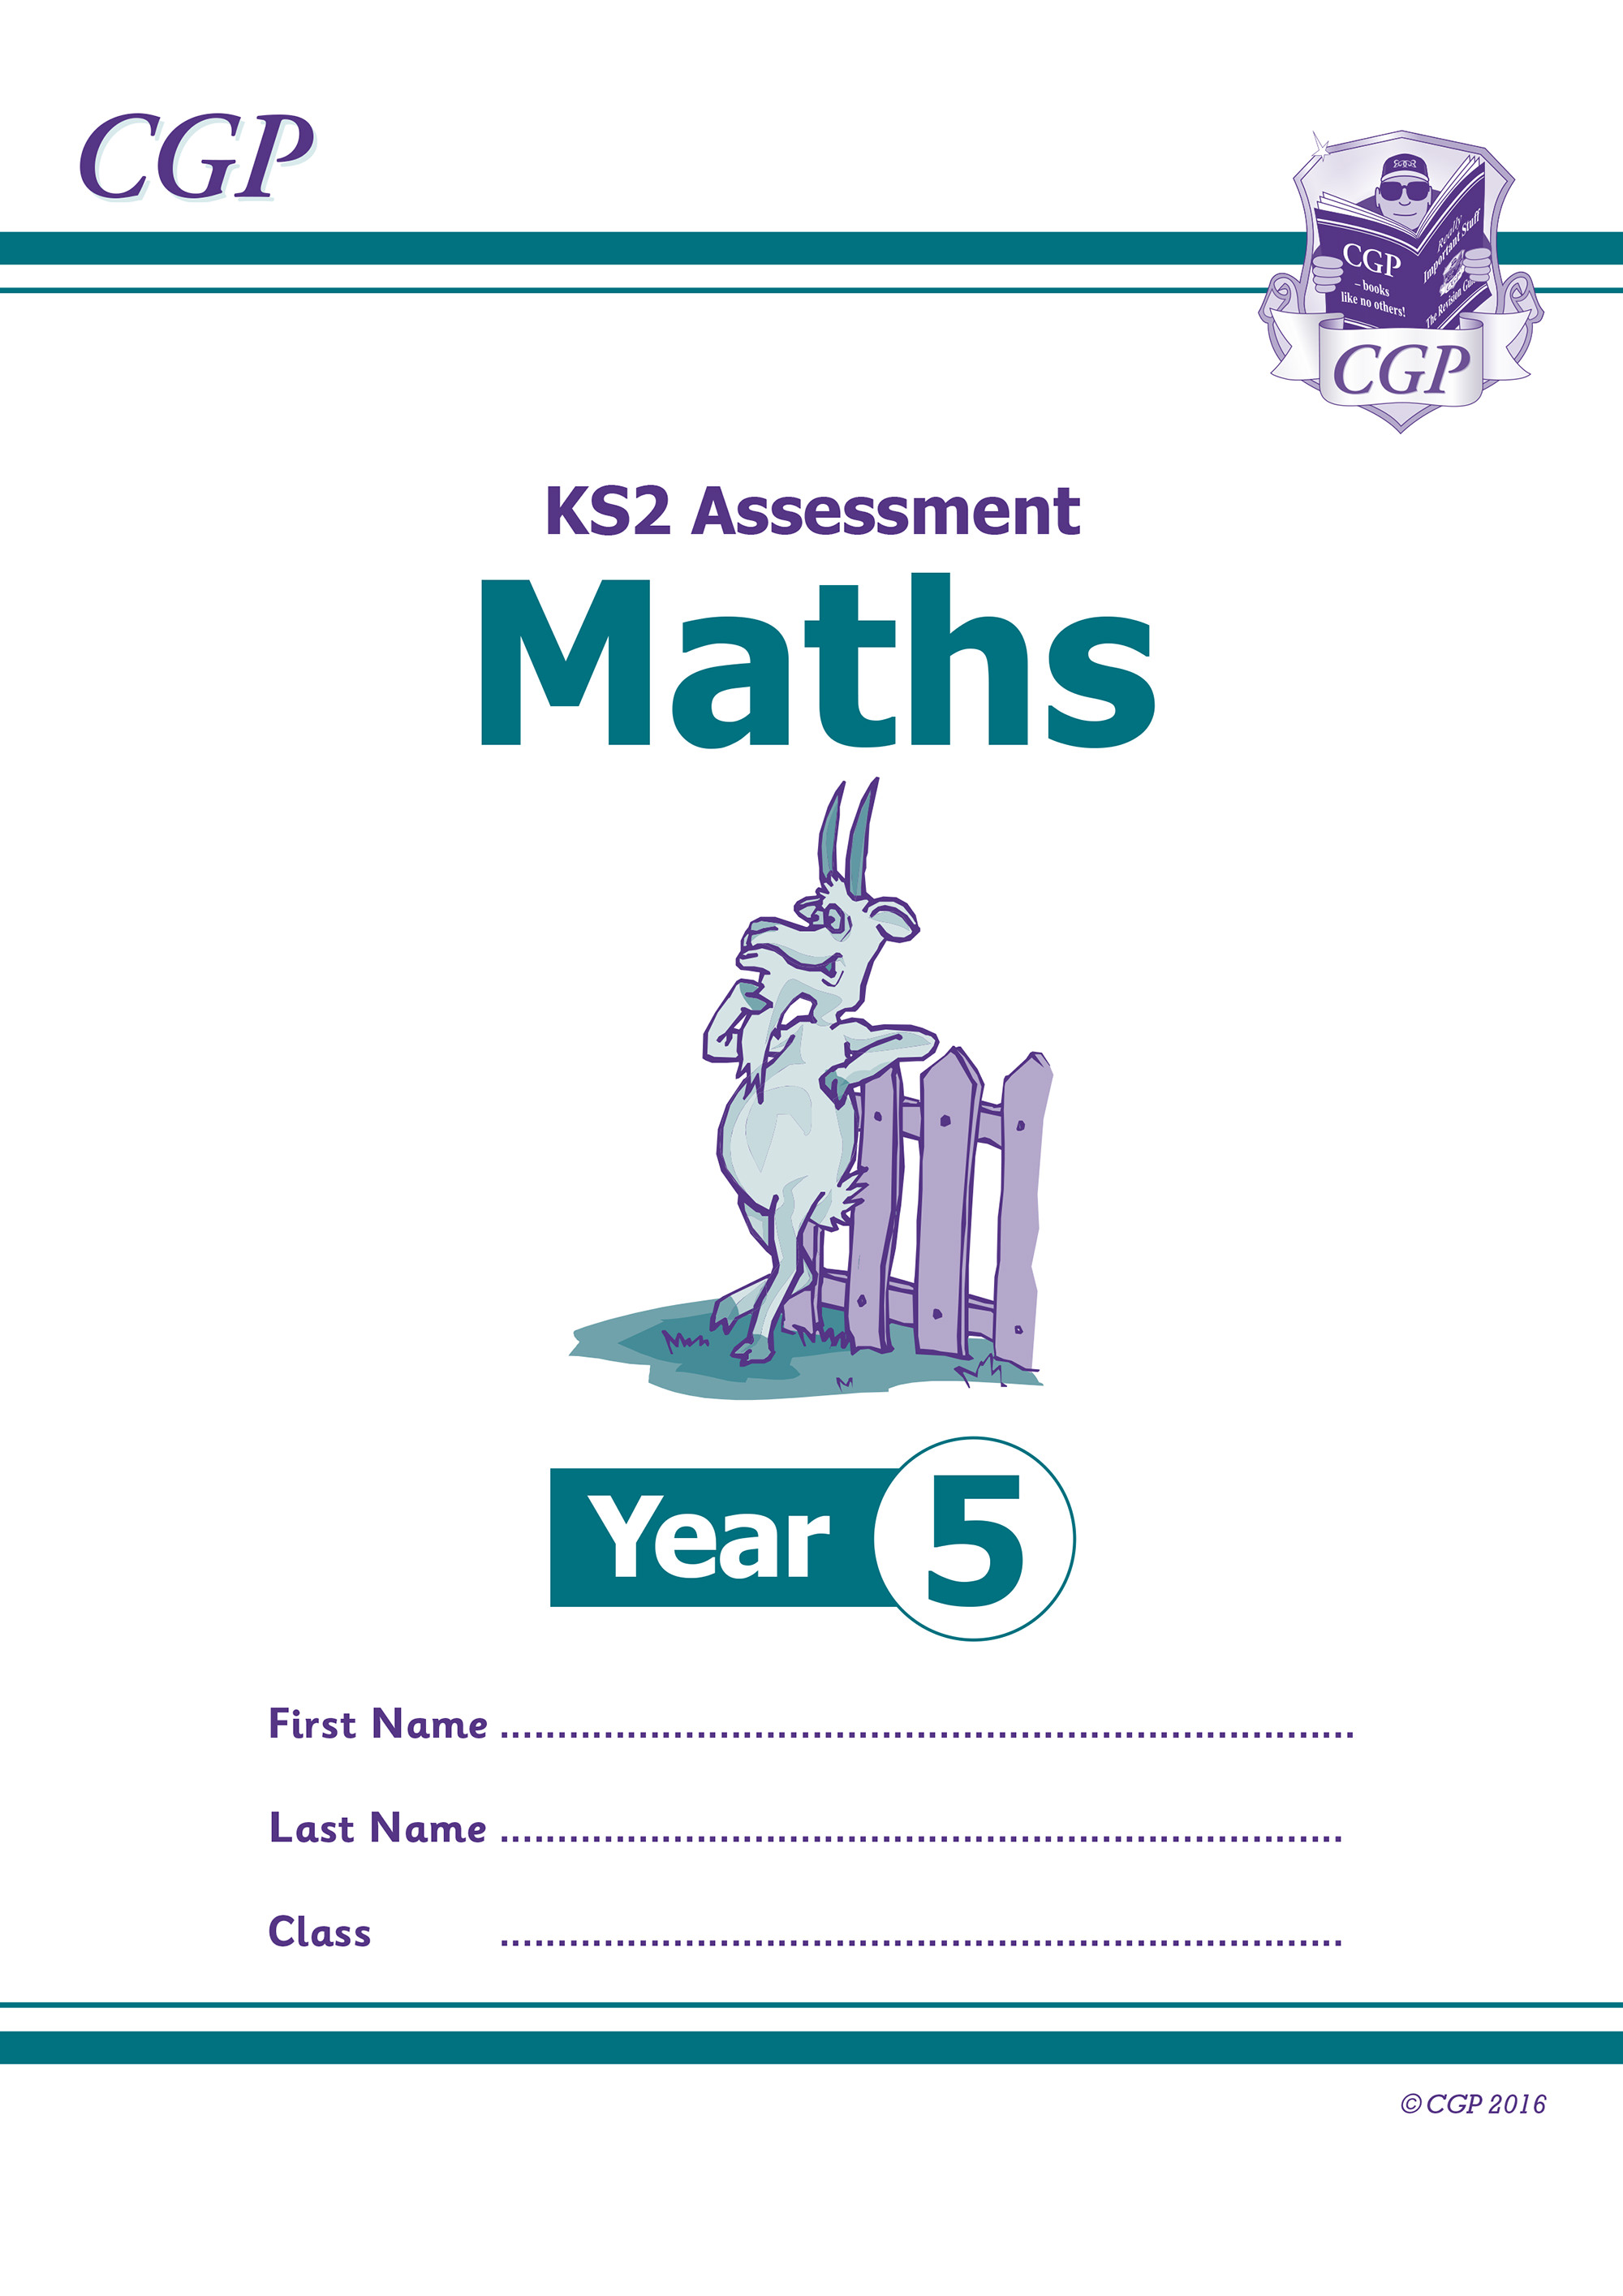 M5P21 - KS2 Assessment: Maths - Year 5 Test